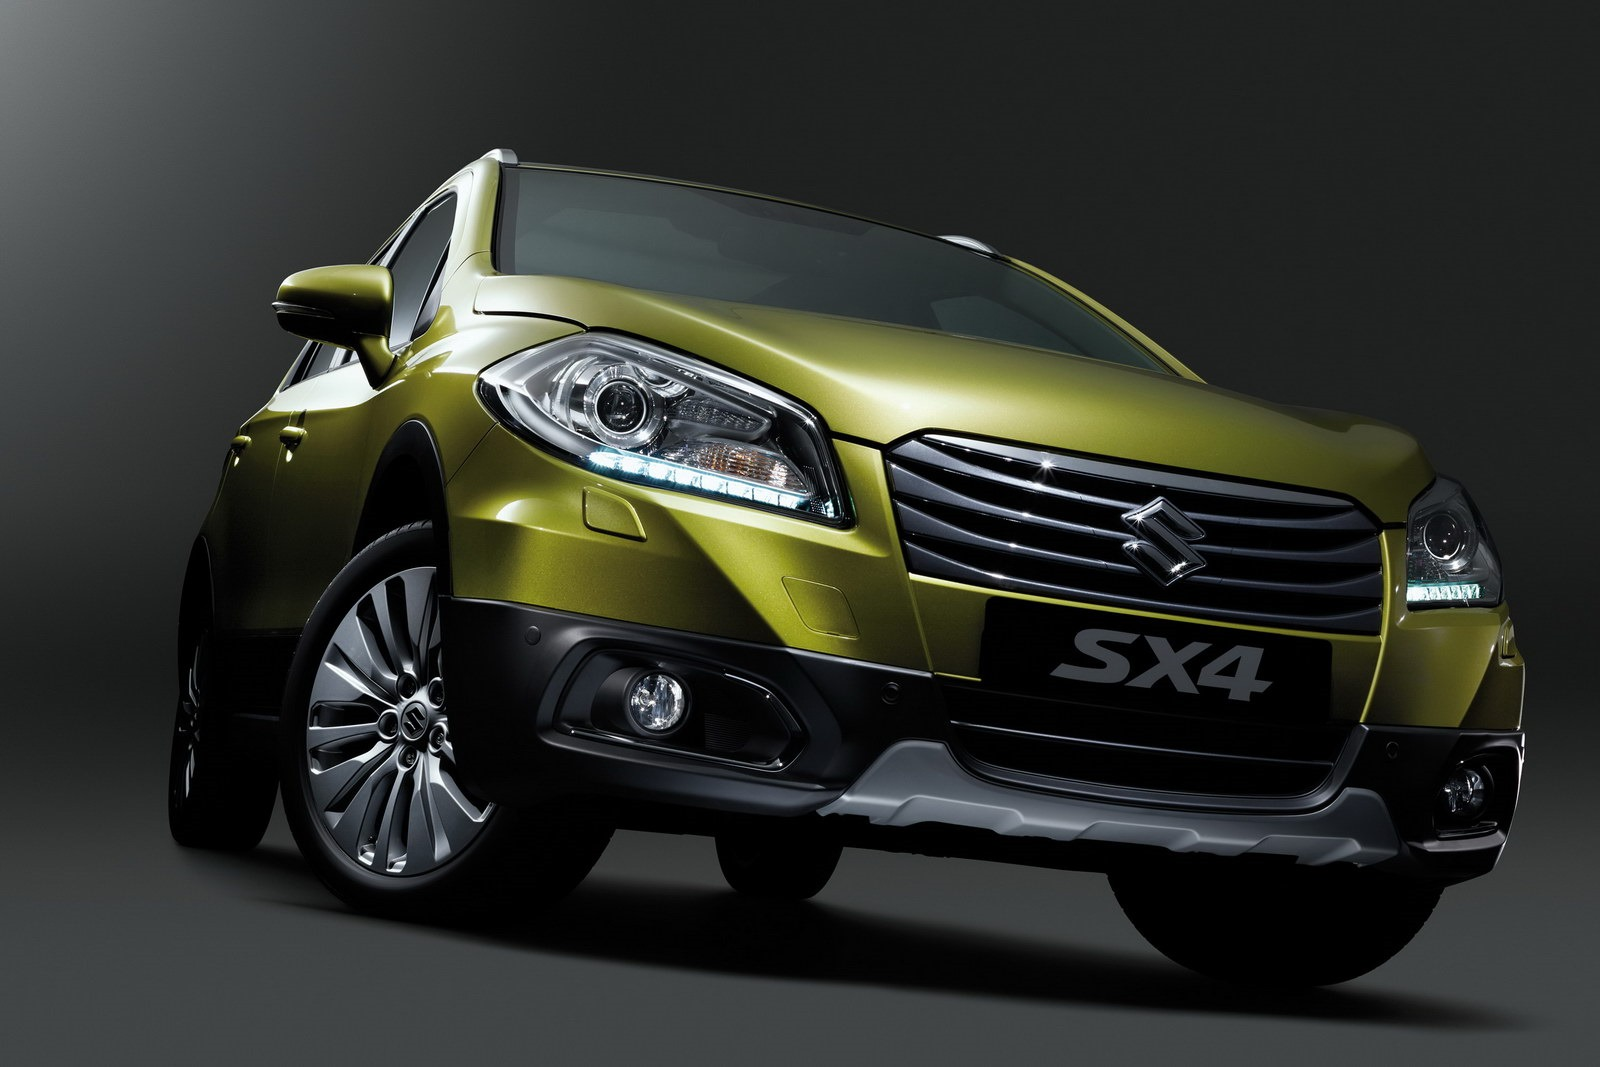 Suzuki has unveiled the new SX4 at the Geneva Show